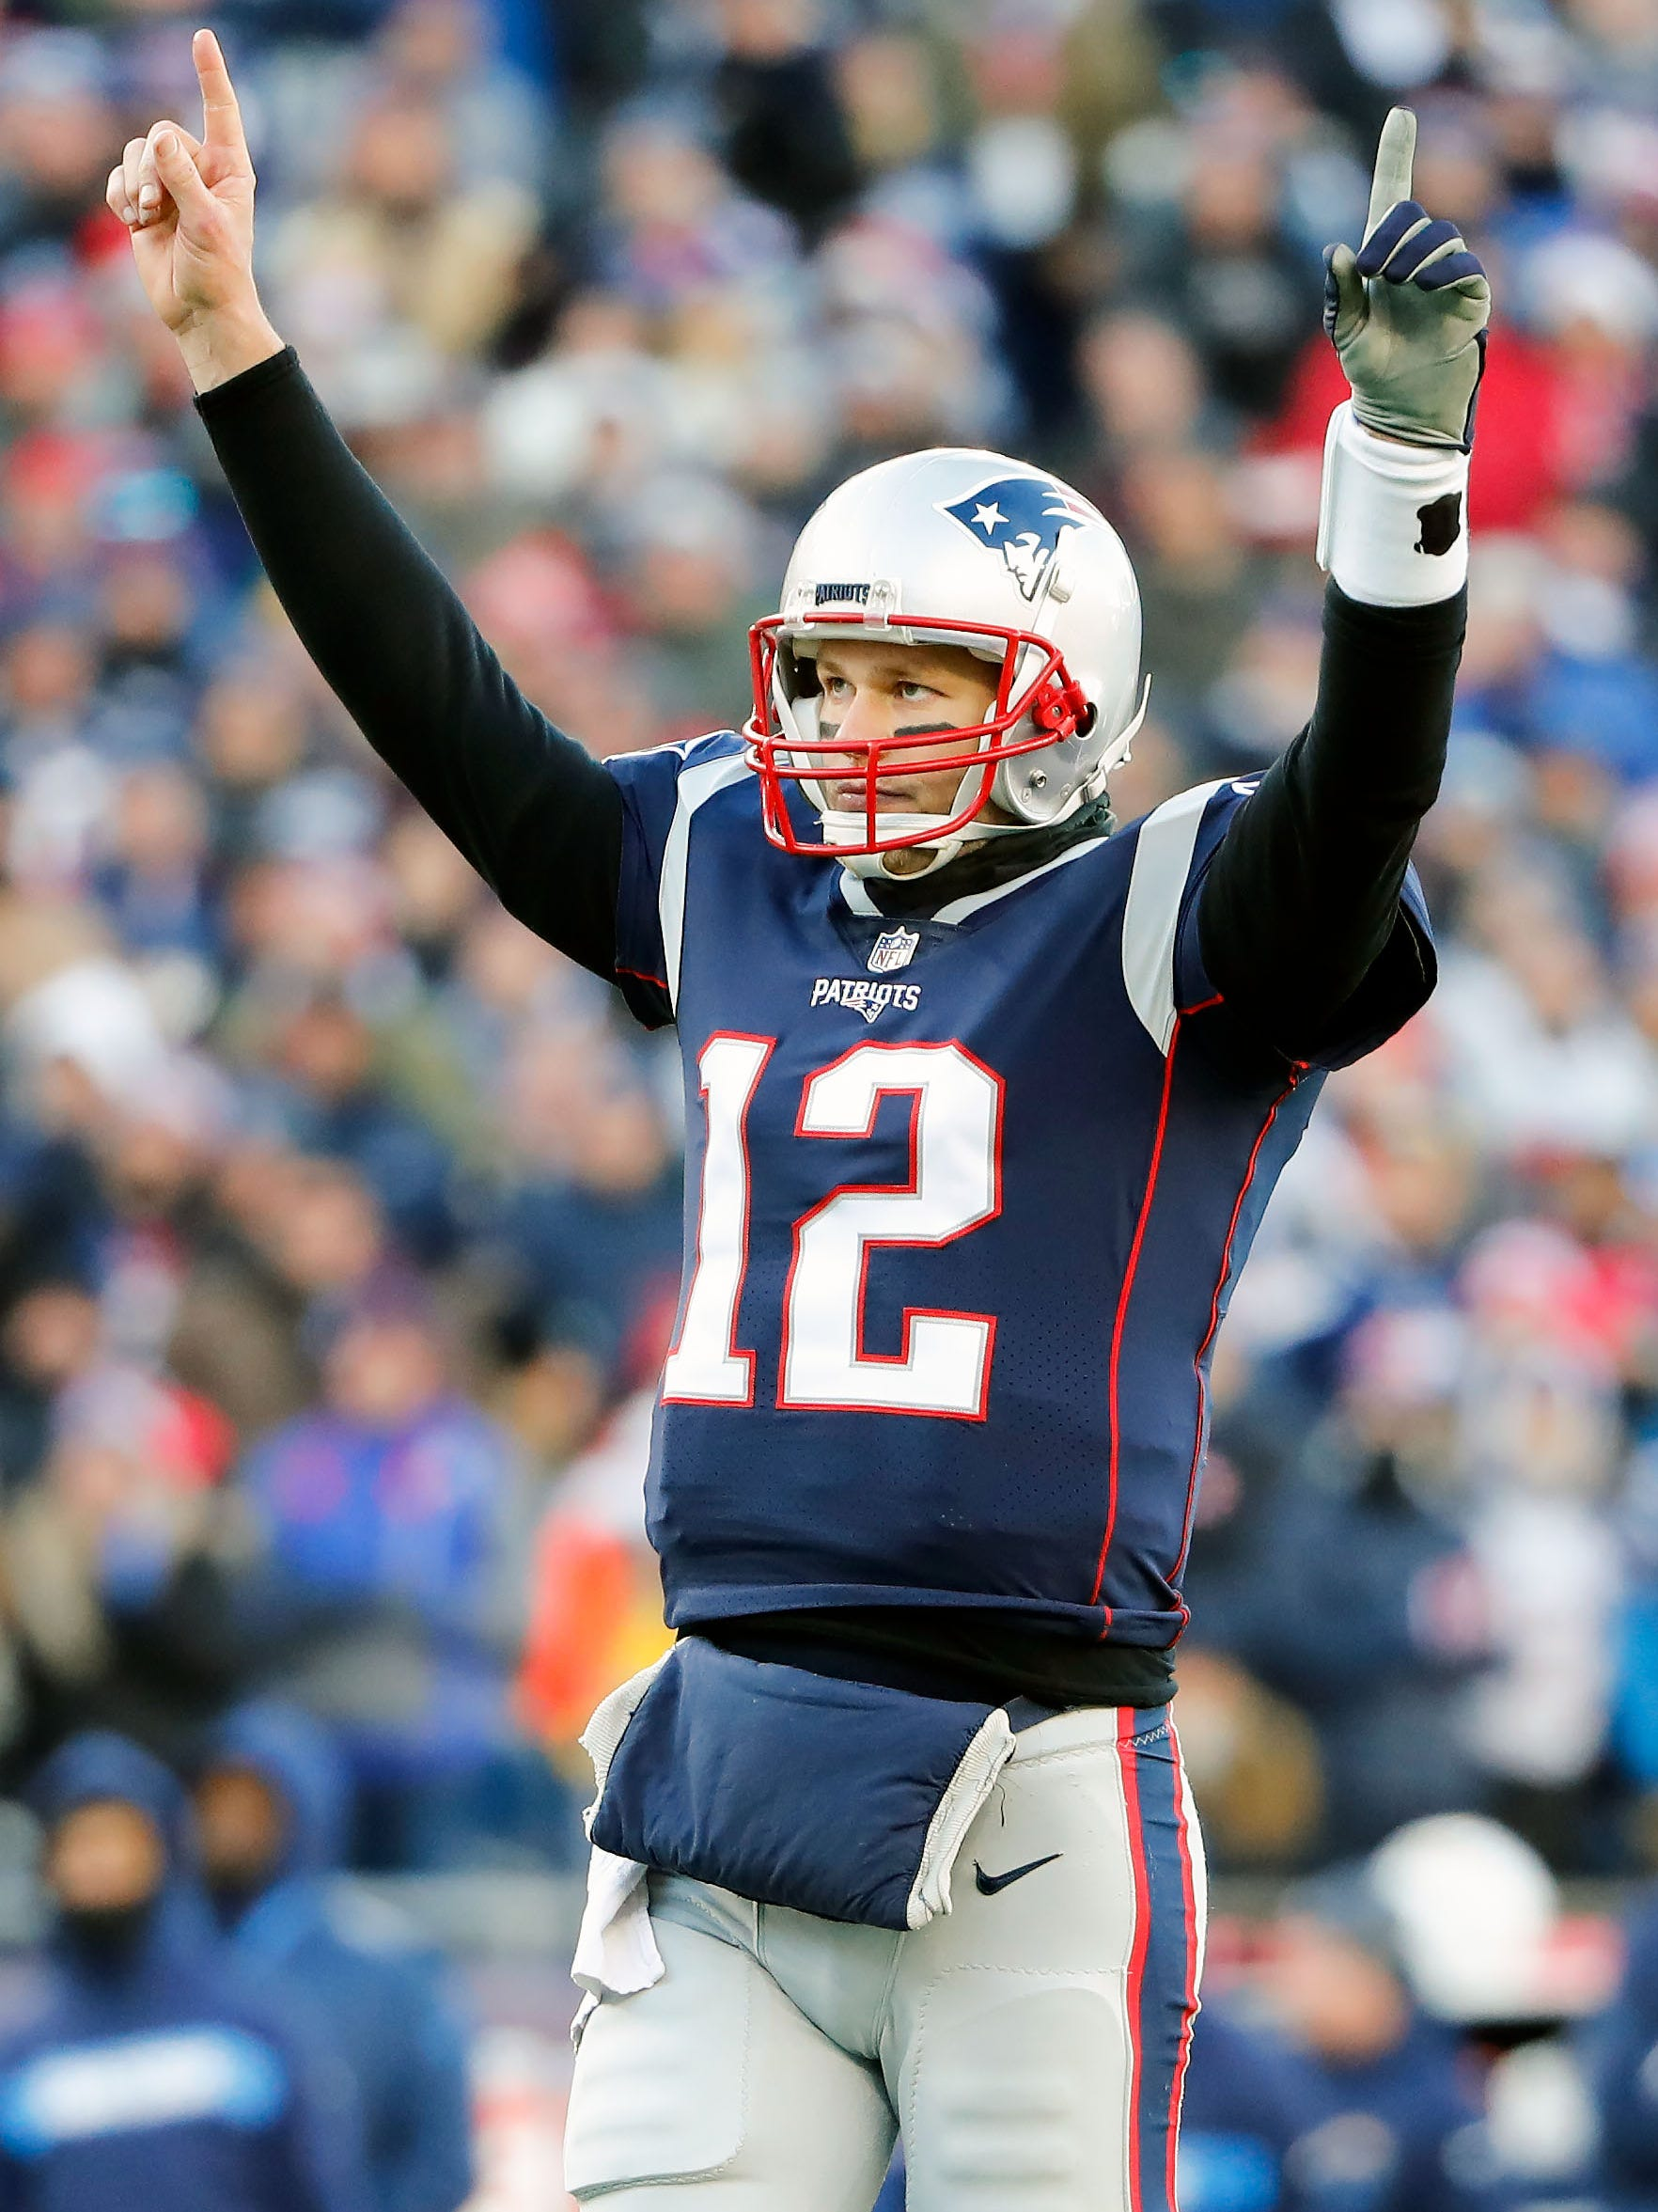 Brady celebrates after a touchdown against the Los Angeles Chargers.